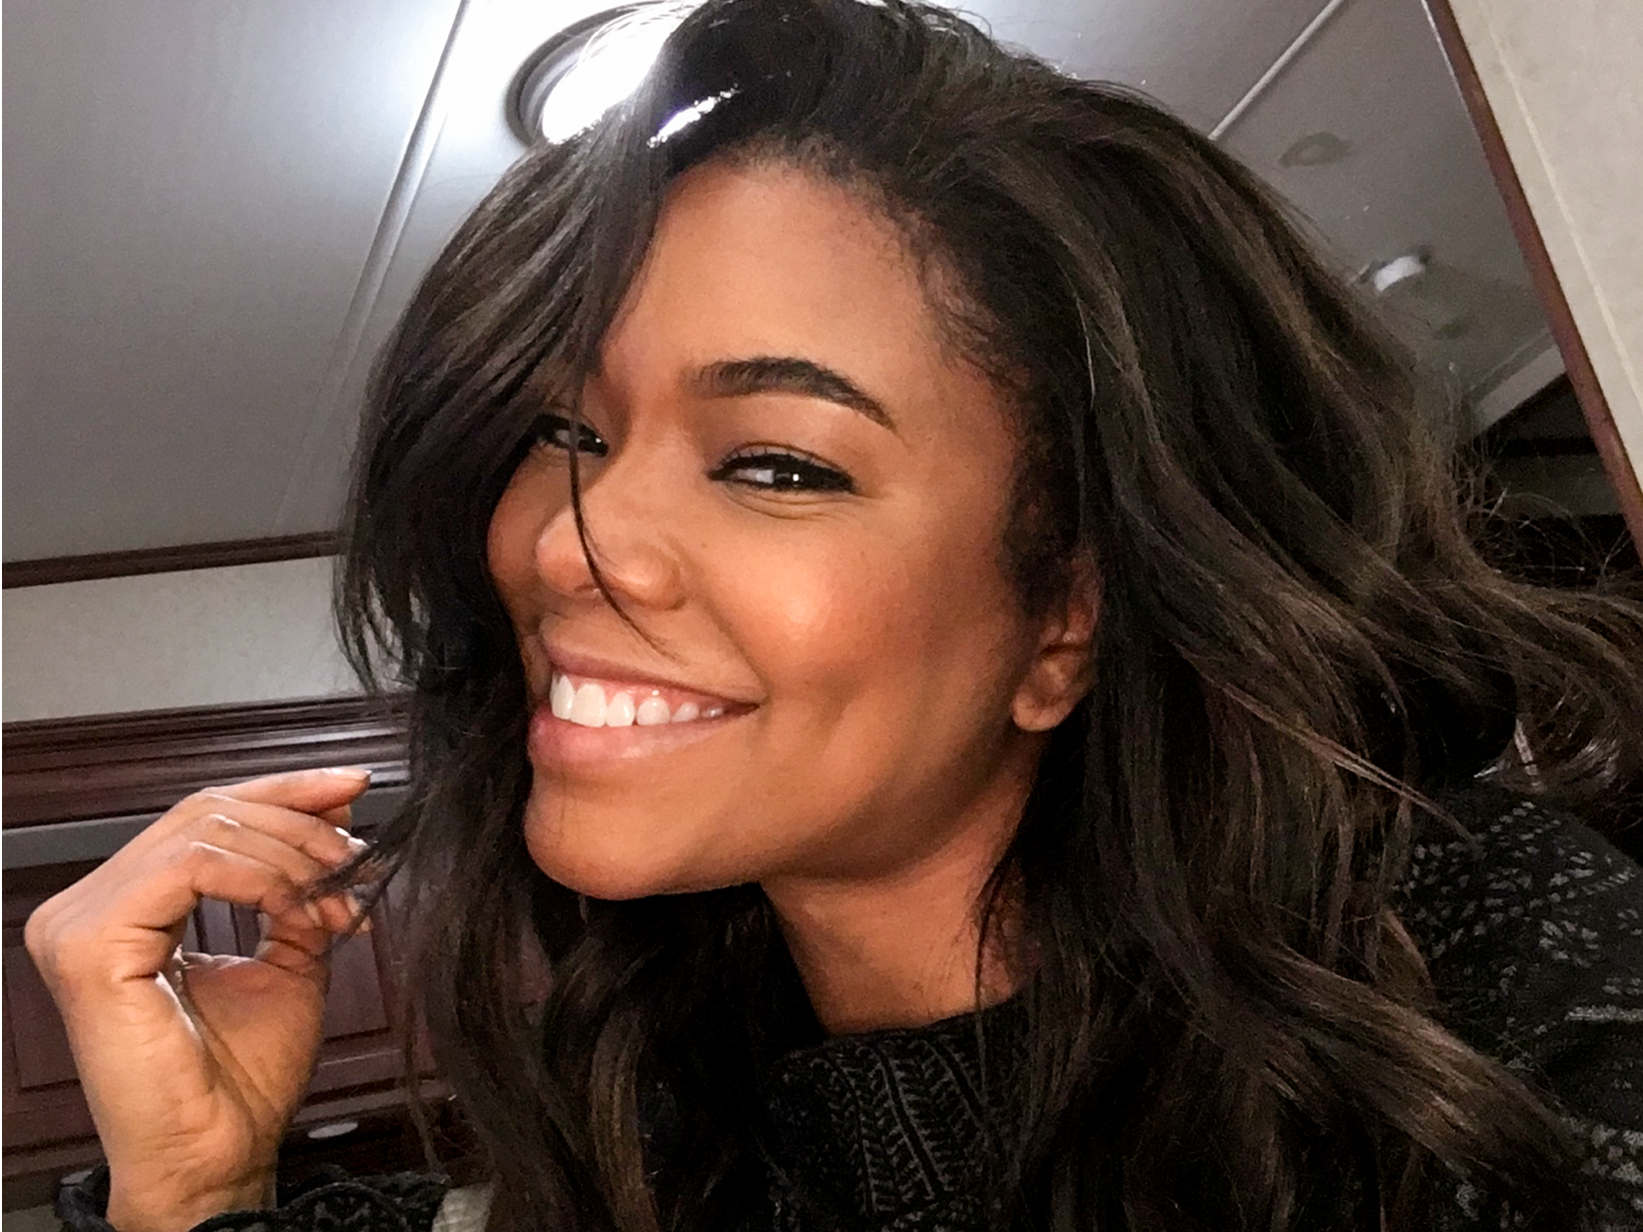 Gabrielle Union Will Soon Share Baby Kaavia James' Opinion With The World